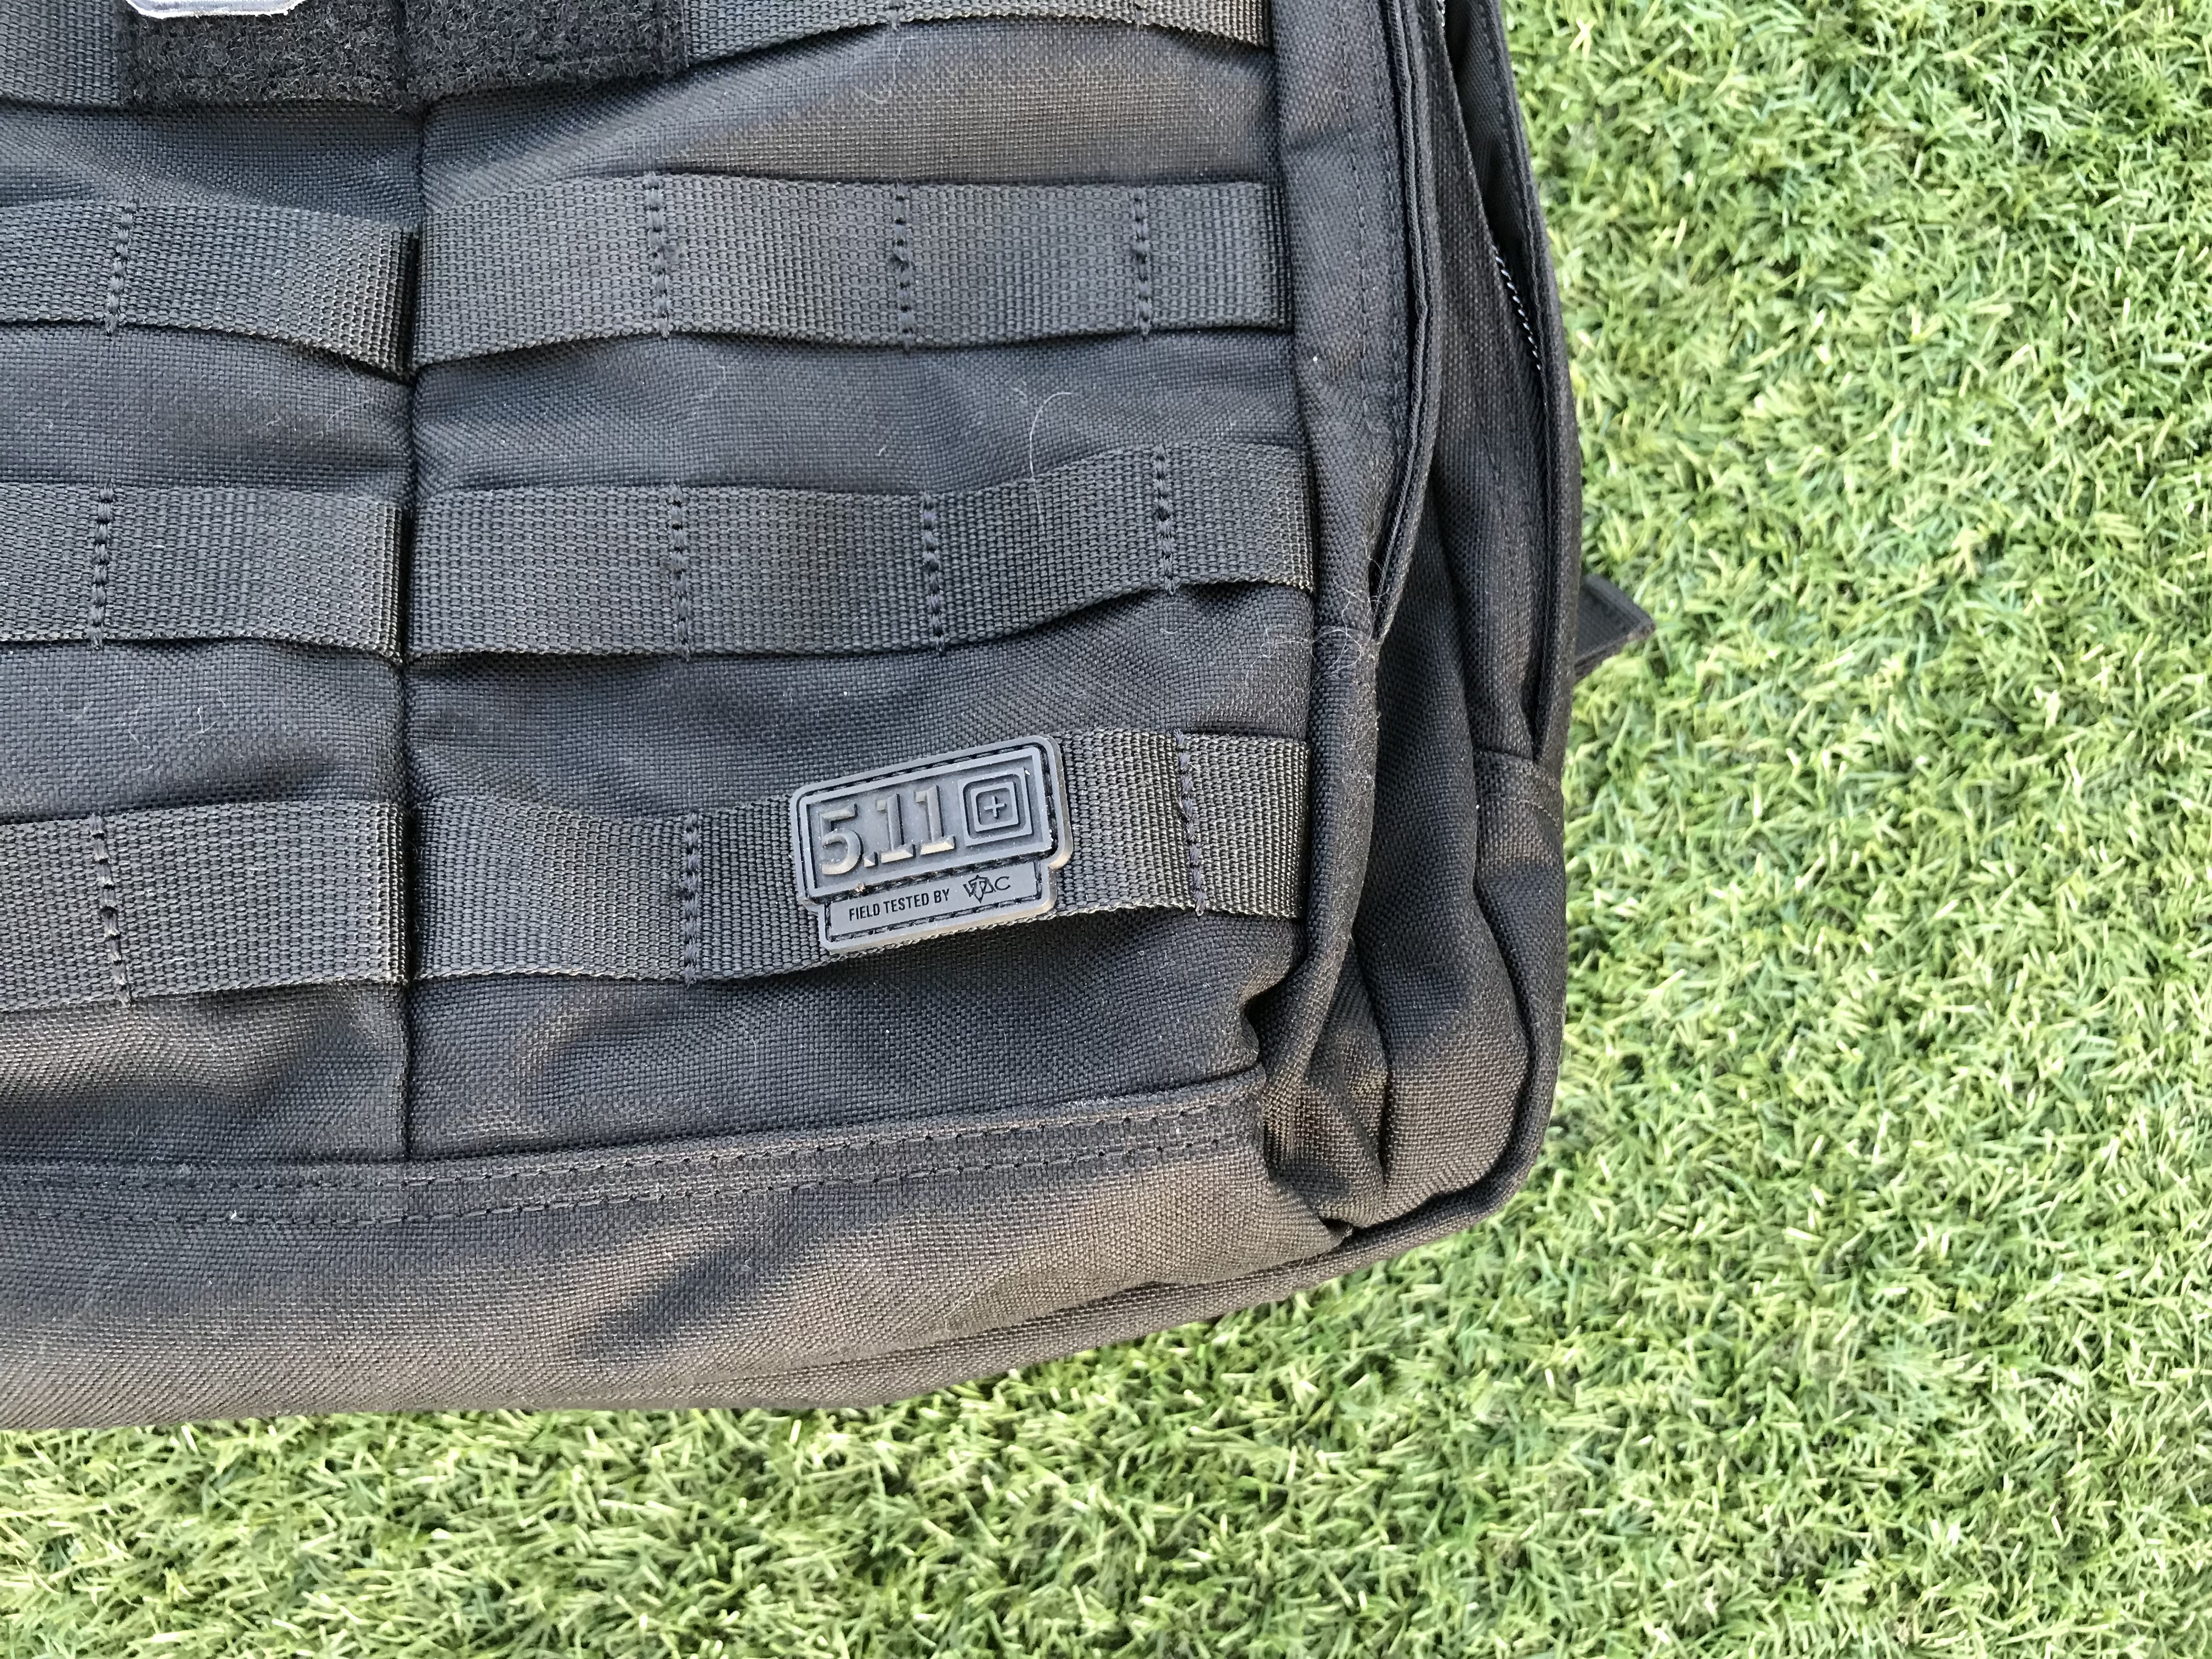 5.11 Rush24 Review Logo and webbing